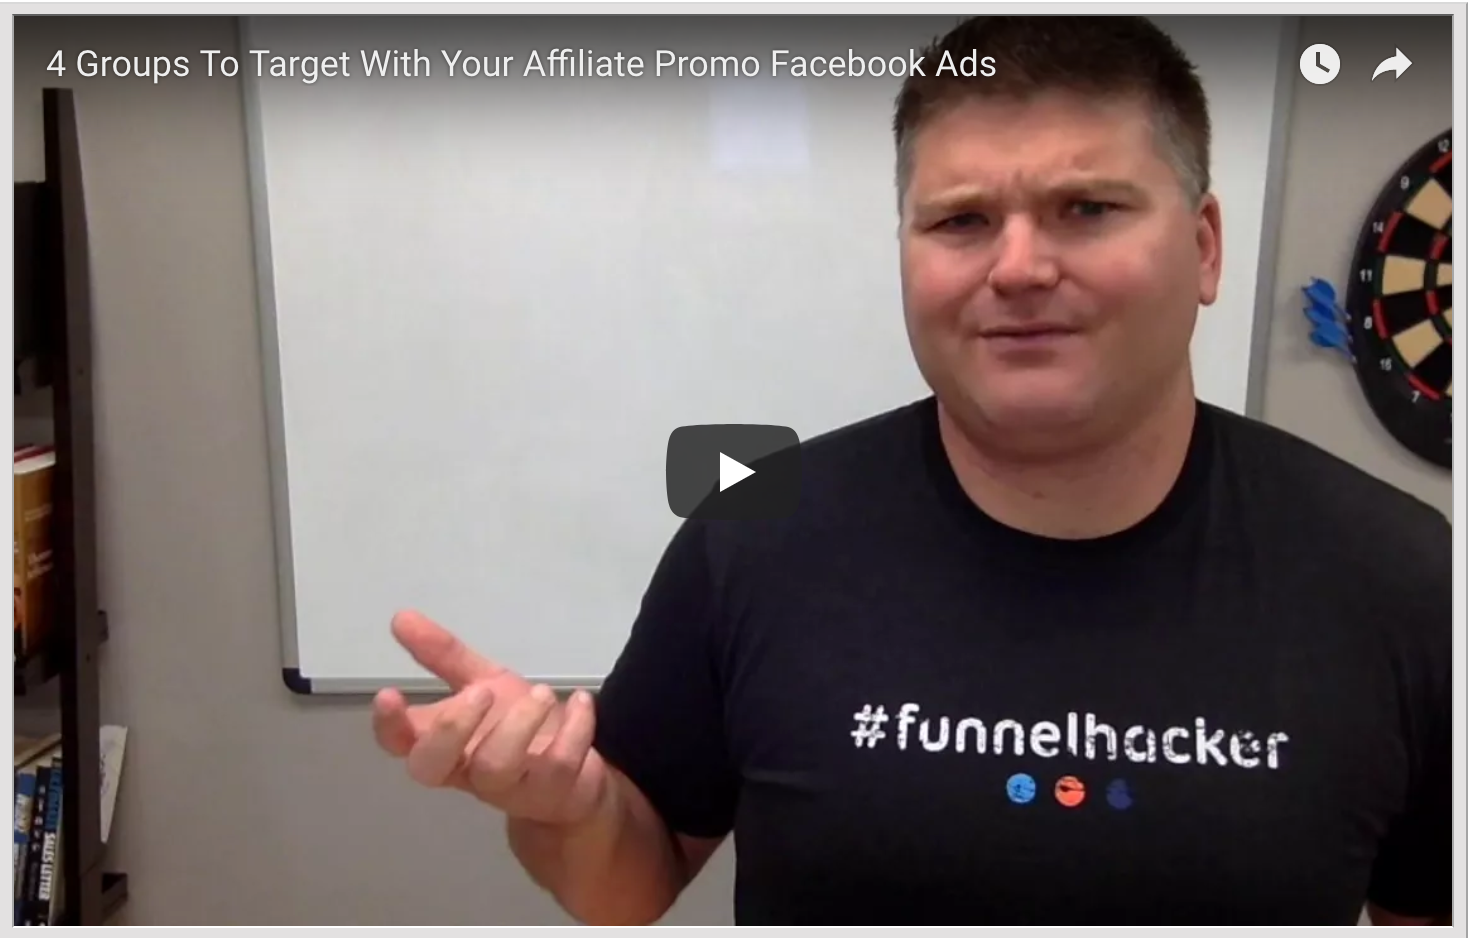 4 Groups to Target With Your Affiliate Promotion Facebook Ads